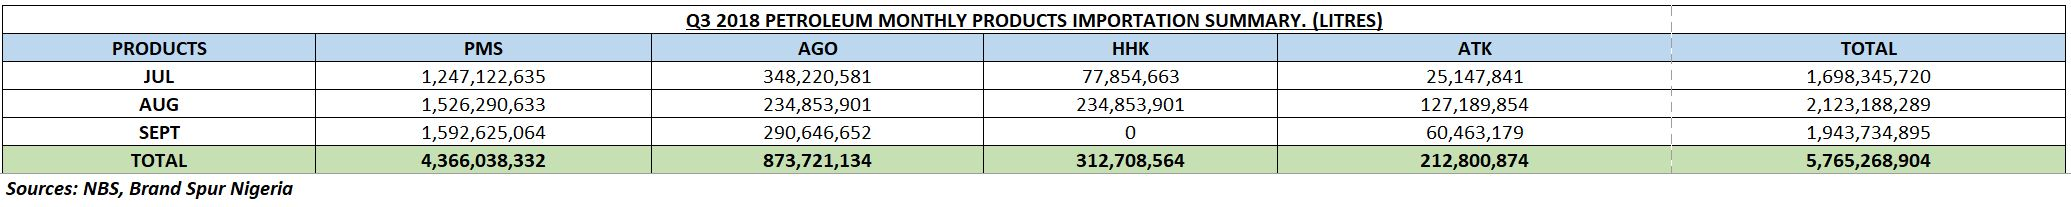 Nigeria Imported 5.76bn Litres Of Petroleum Products In Q3 2018 – NBS